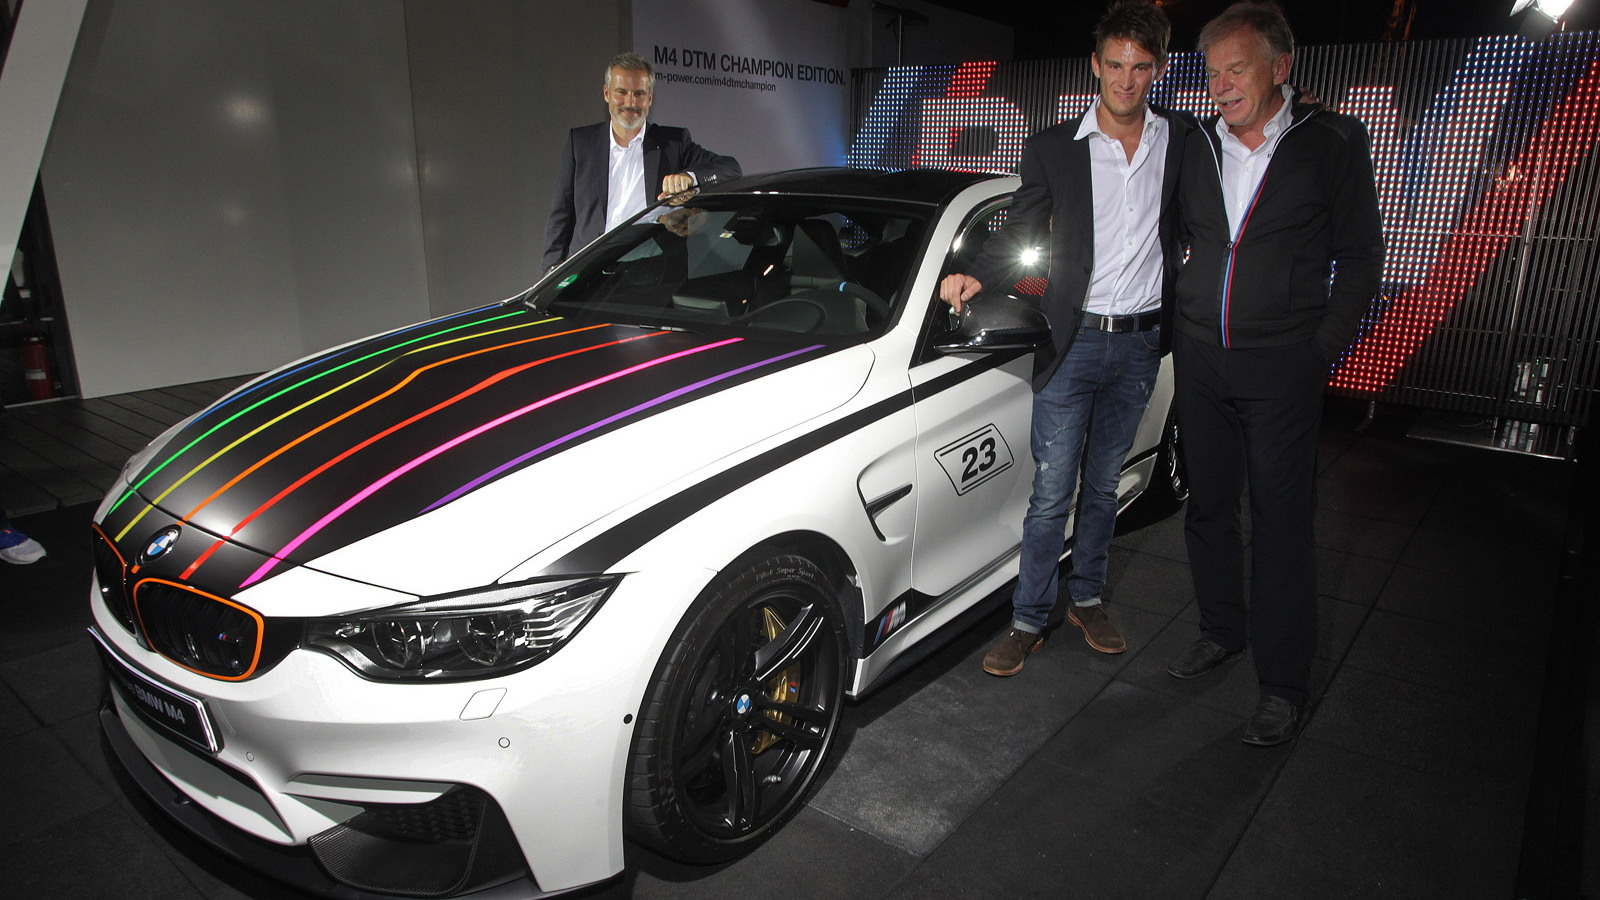 BMW M4 DTM Champion Edition unveiled at the Hockenheimring, October 19, 2014